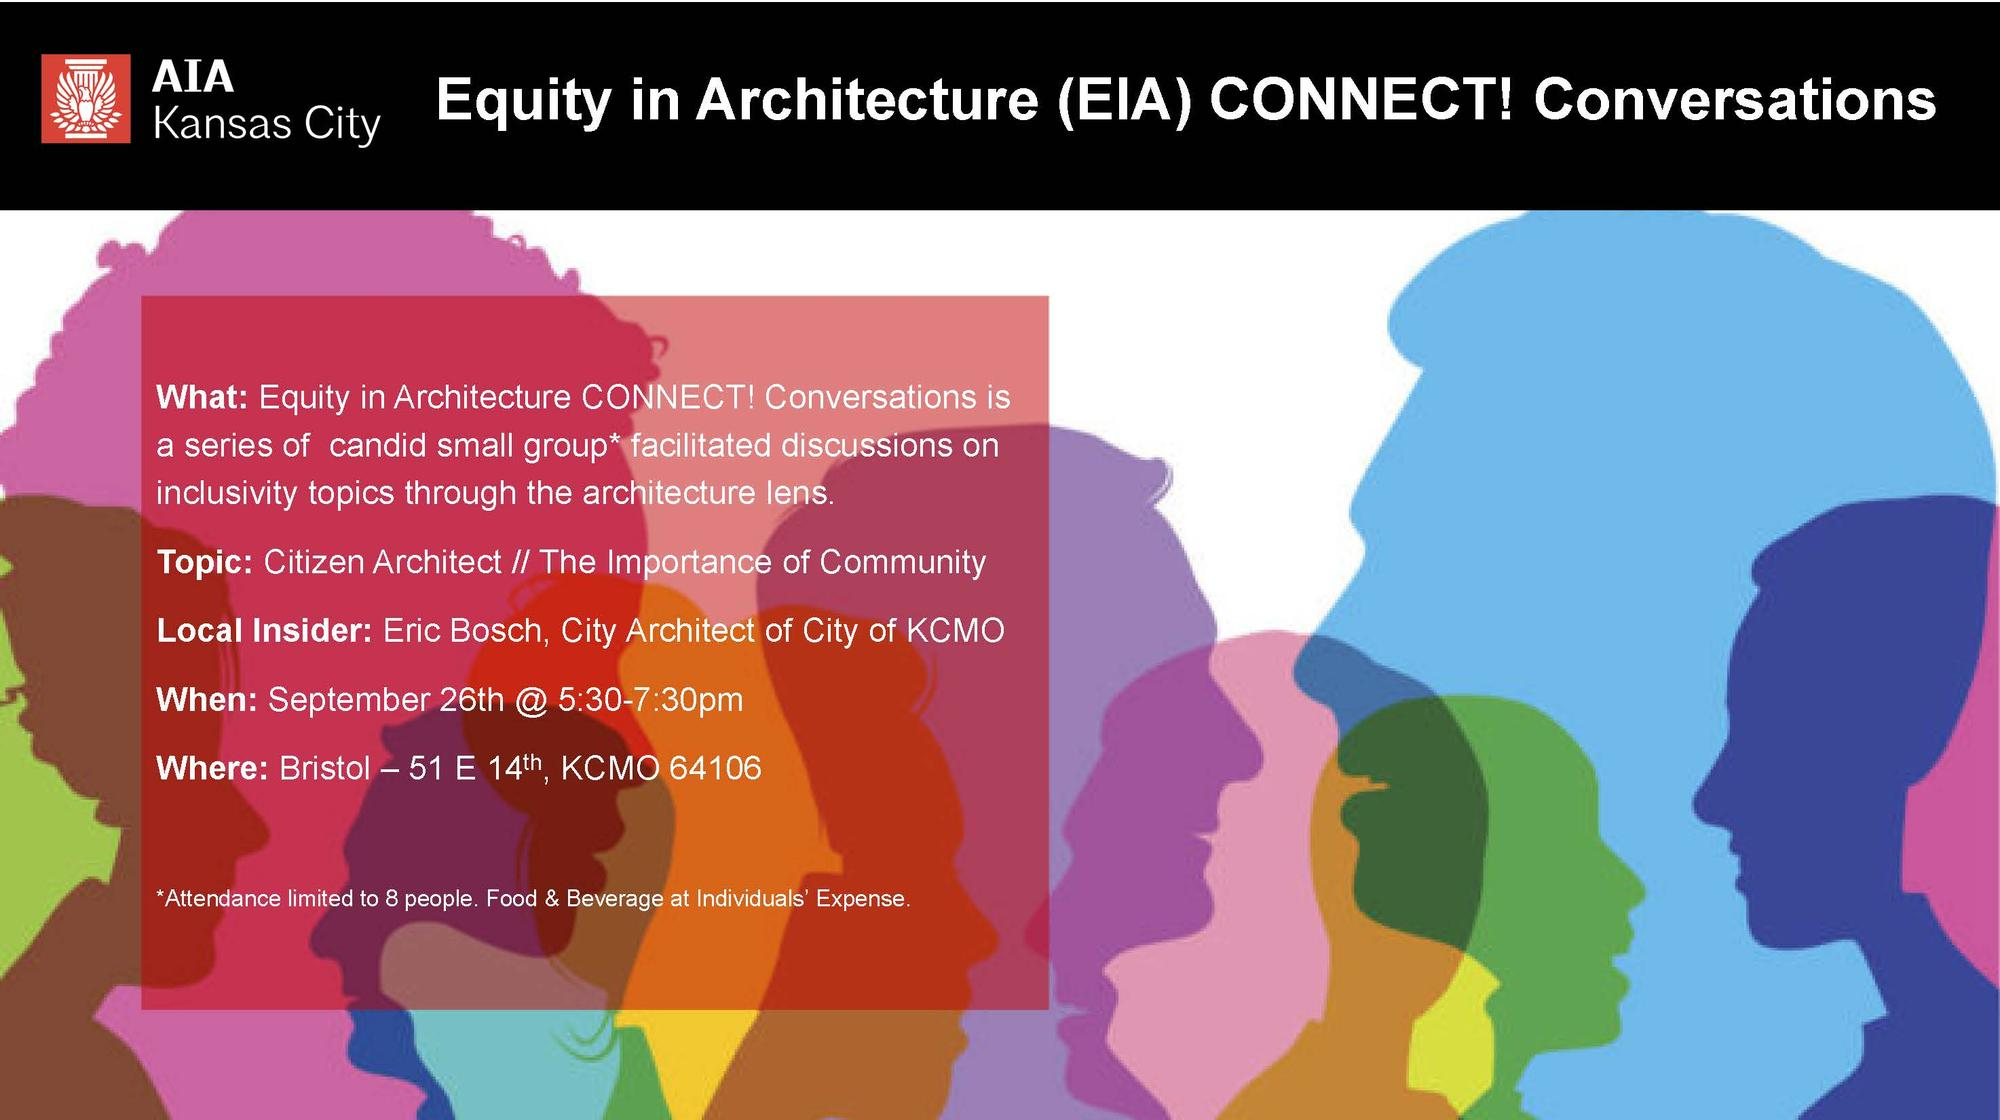 Equity in Architecture: Citizen Architect // The Importance of Community